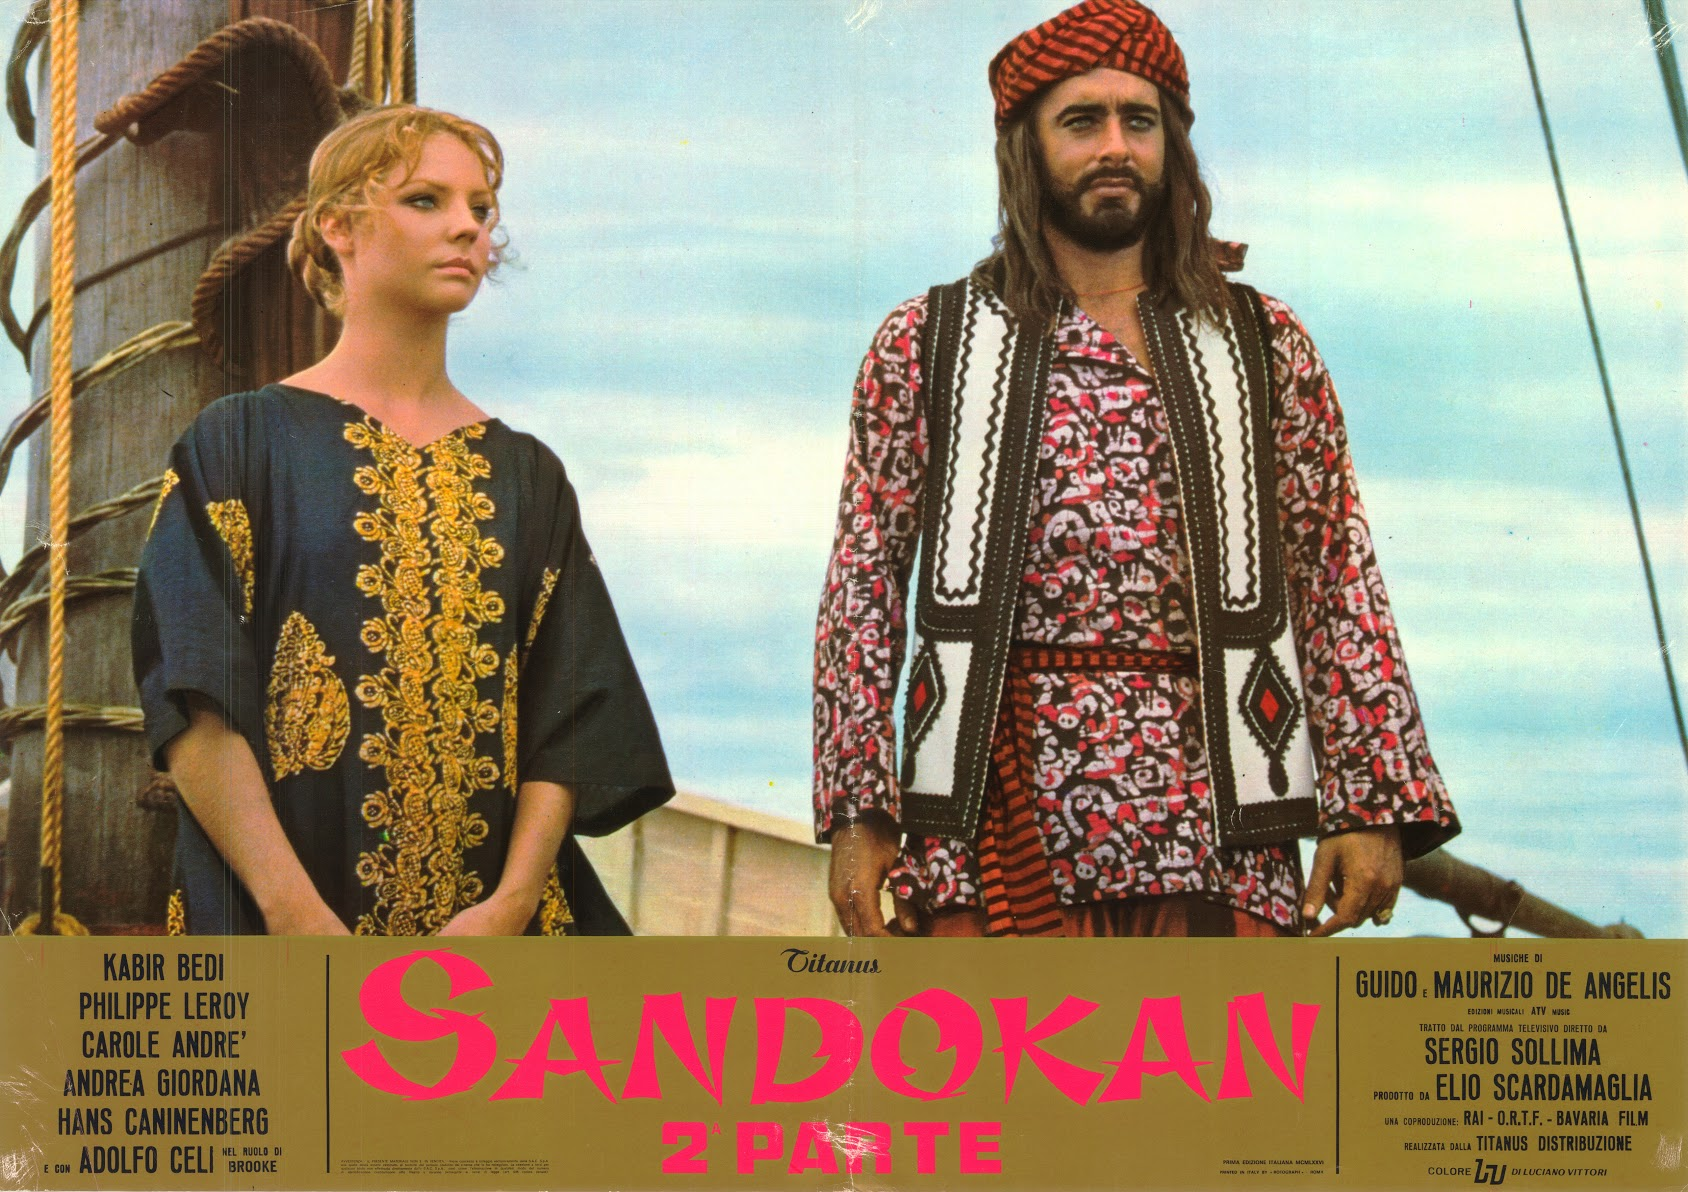 POSTER SANDOKAN & MARIANNA ON SHIP